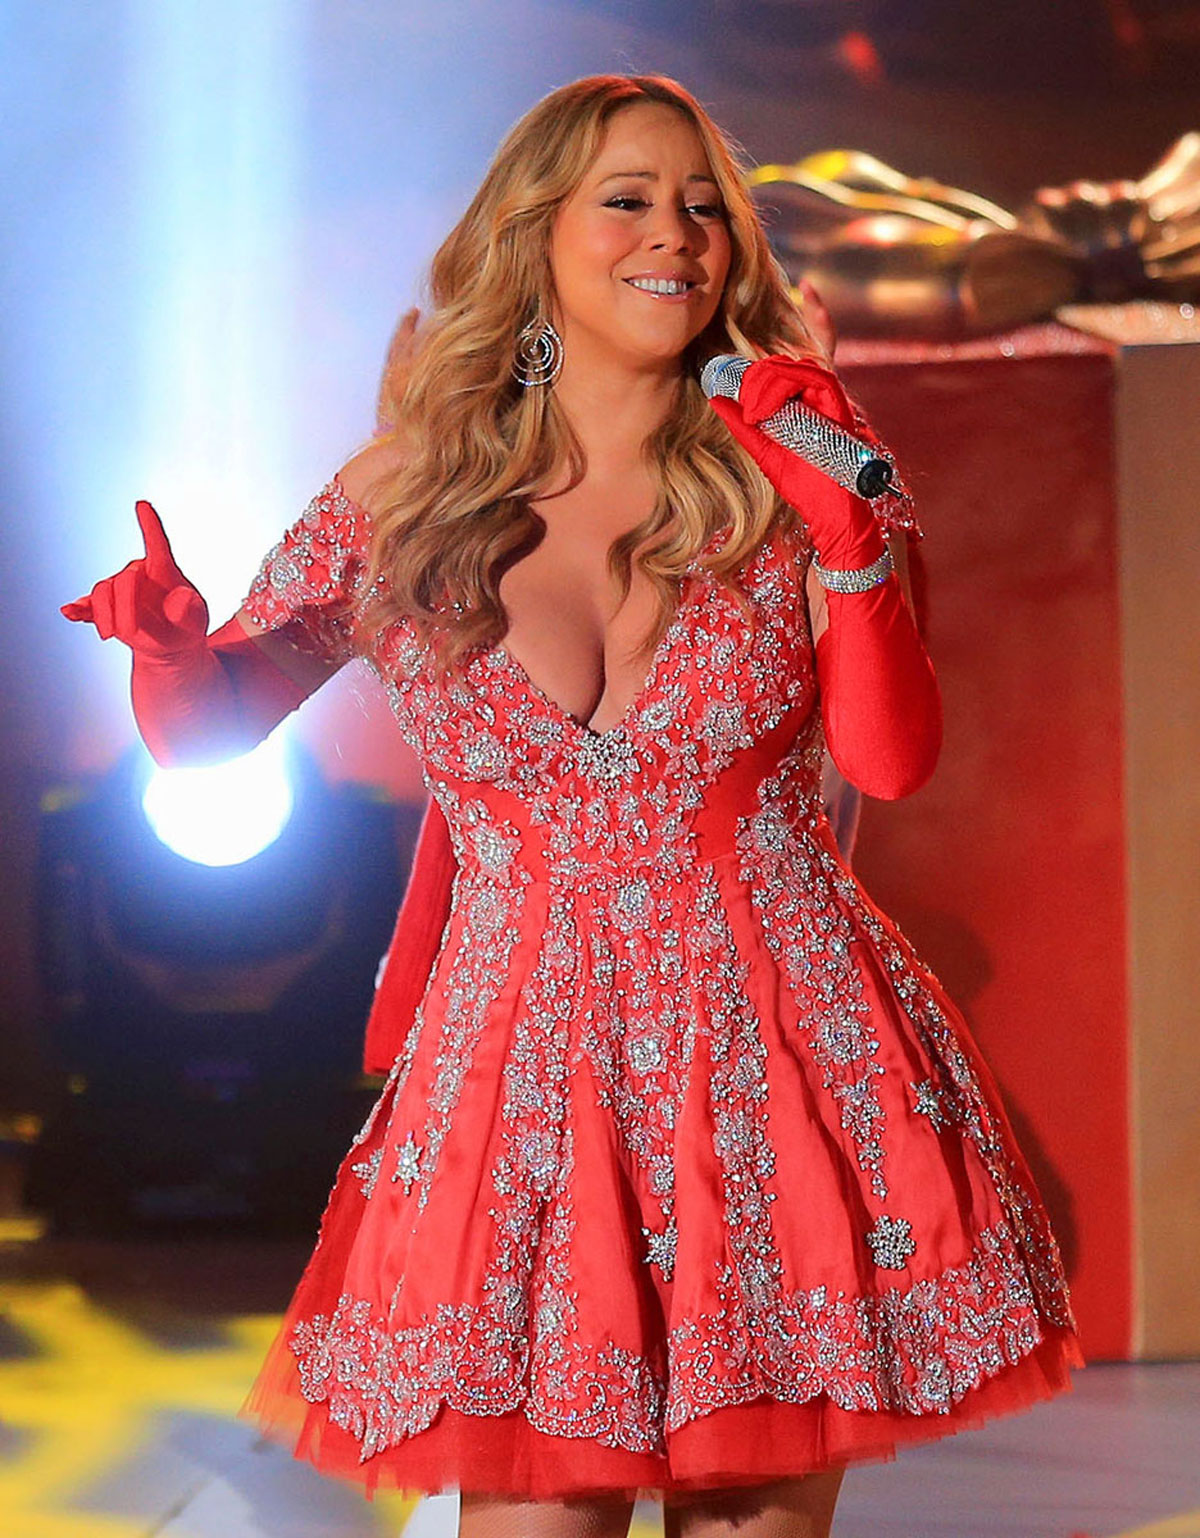 MARIAH CAREY at Rockefeller Center Christmas Tree Lighting Ceremony  sc 1 st  HawtCelebs & MARIAH CAREY at 80th Annual Rockefeller Center Christmas Tree ...